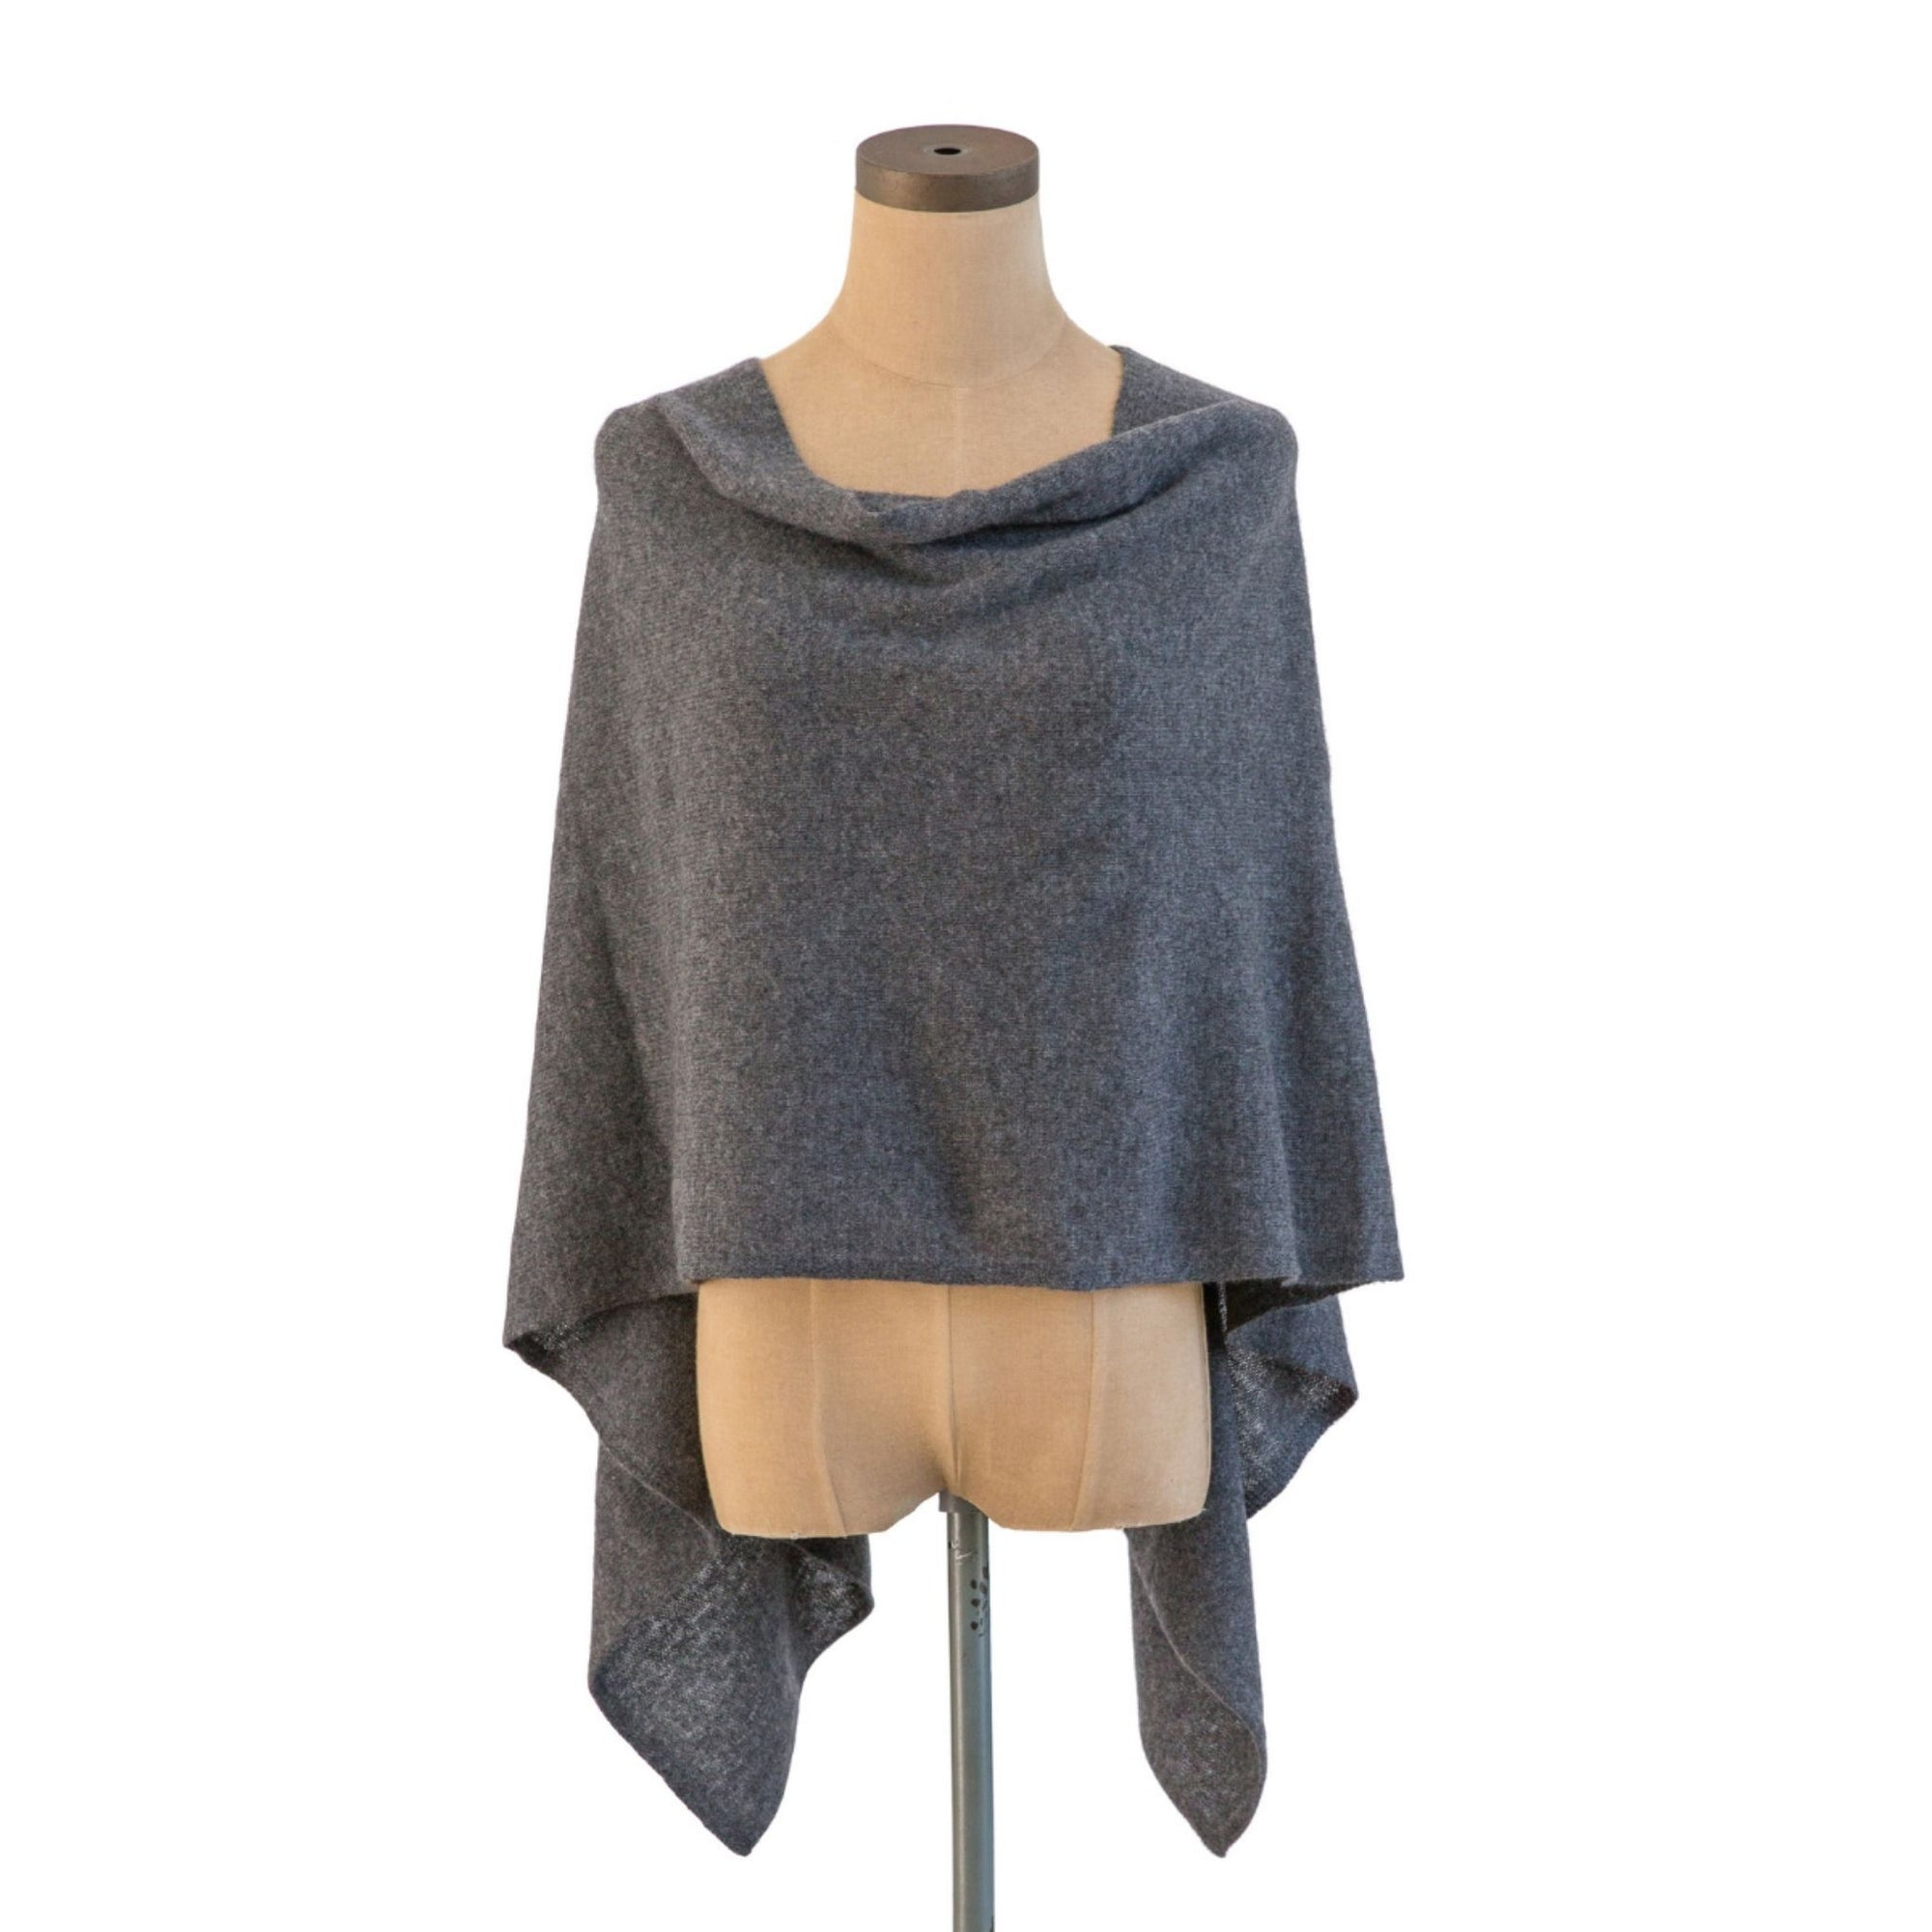 Graphite Cashmere Dress Topper